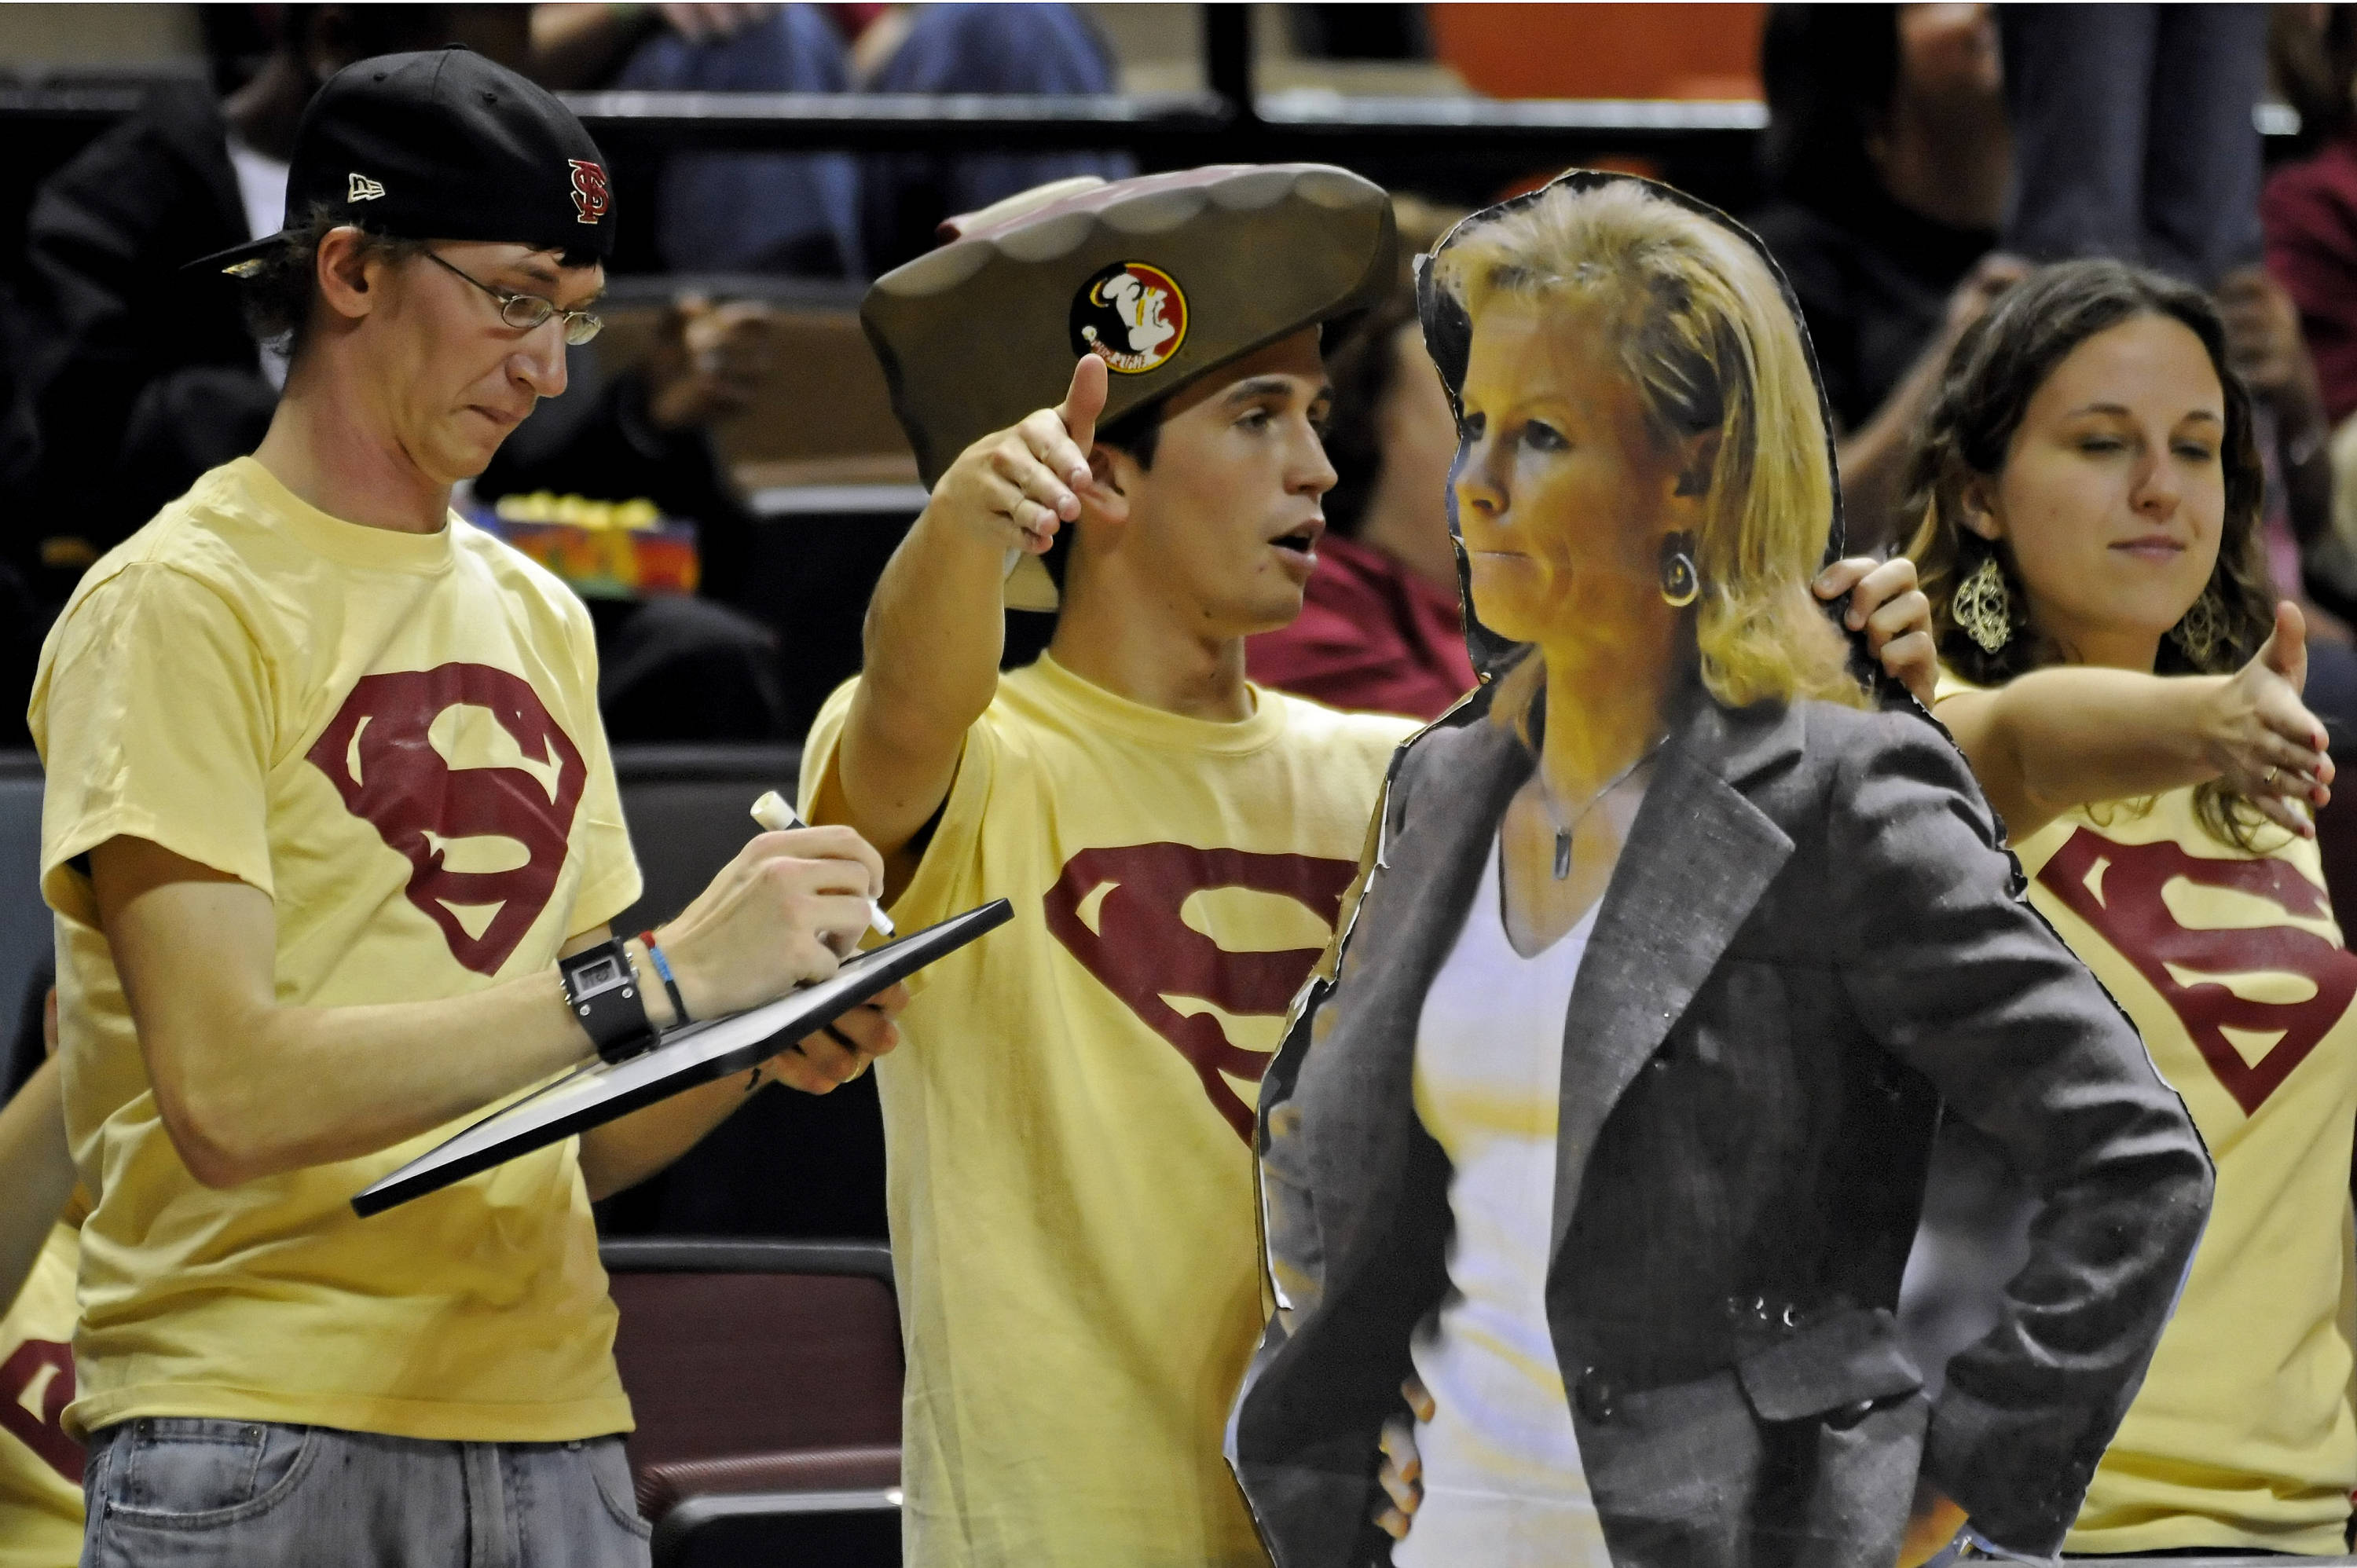 Sept. 6 ... Is that Coach Sue? Well, not really. That's a cutout made by the SUEper Fans as they showed their support last year during a game.